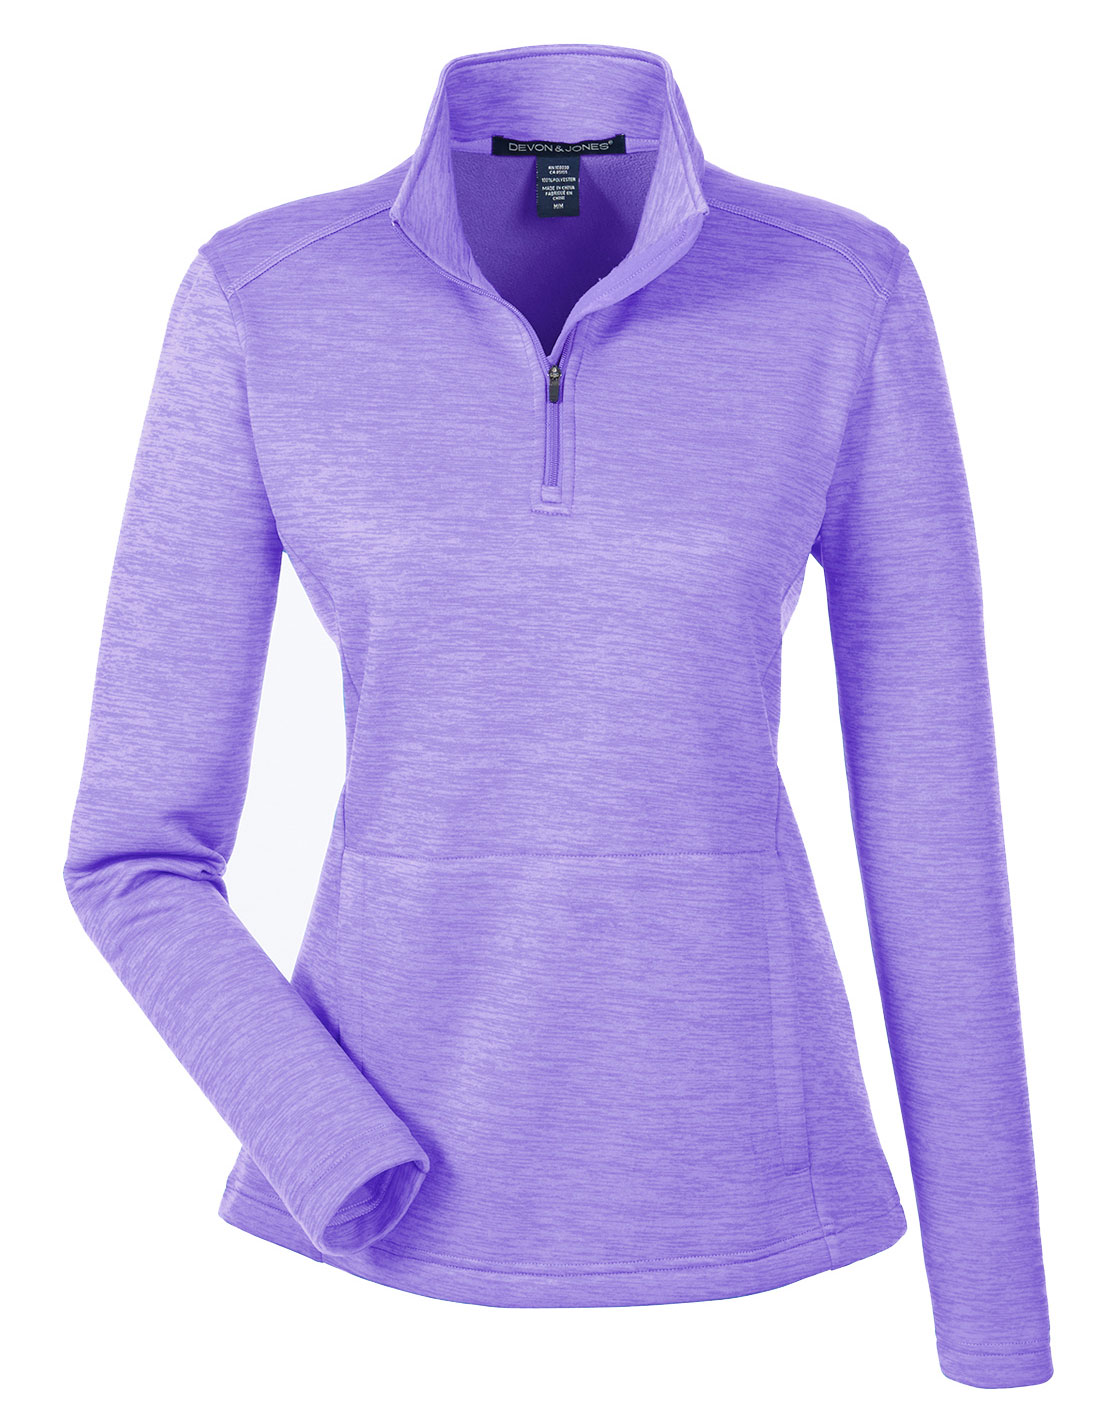 Ladies NewburyMélange Fleece Quarter-Zip